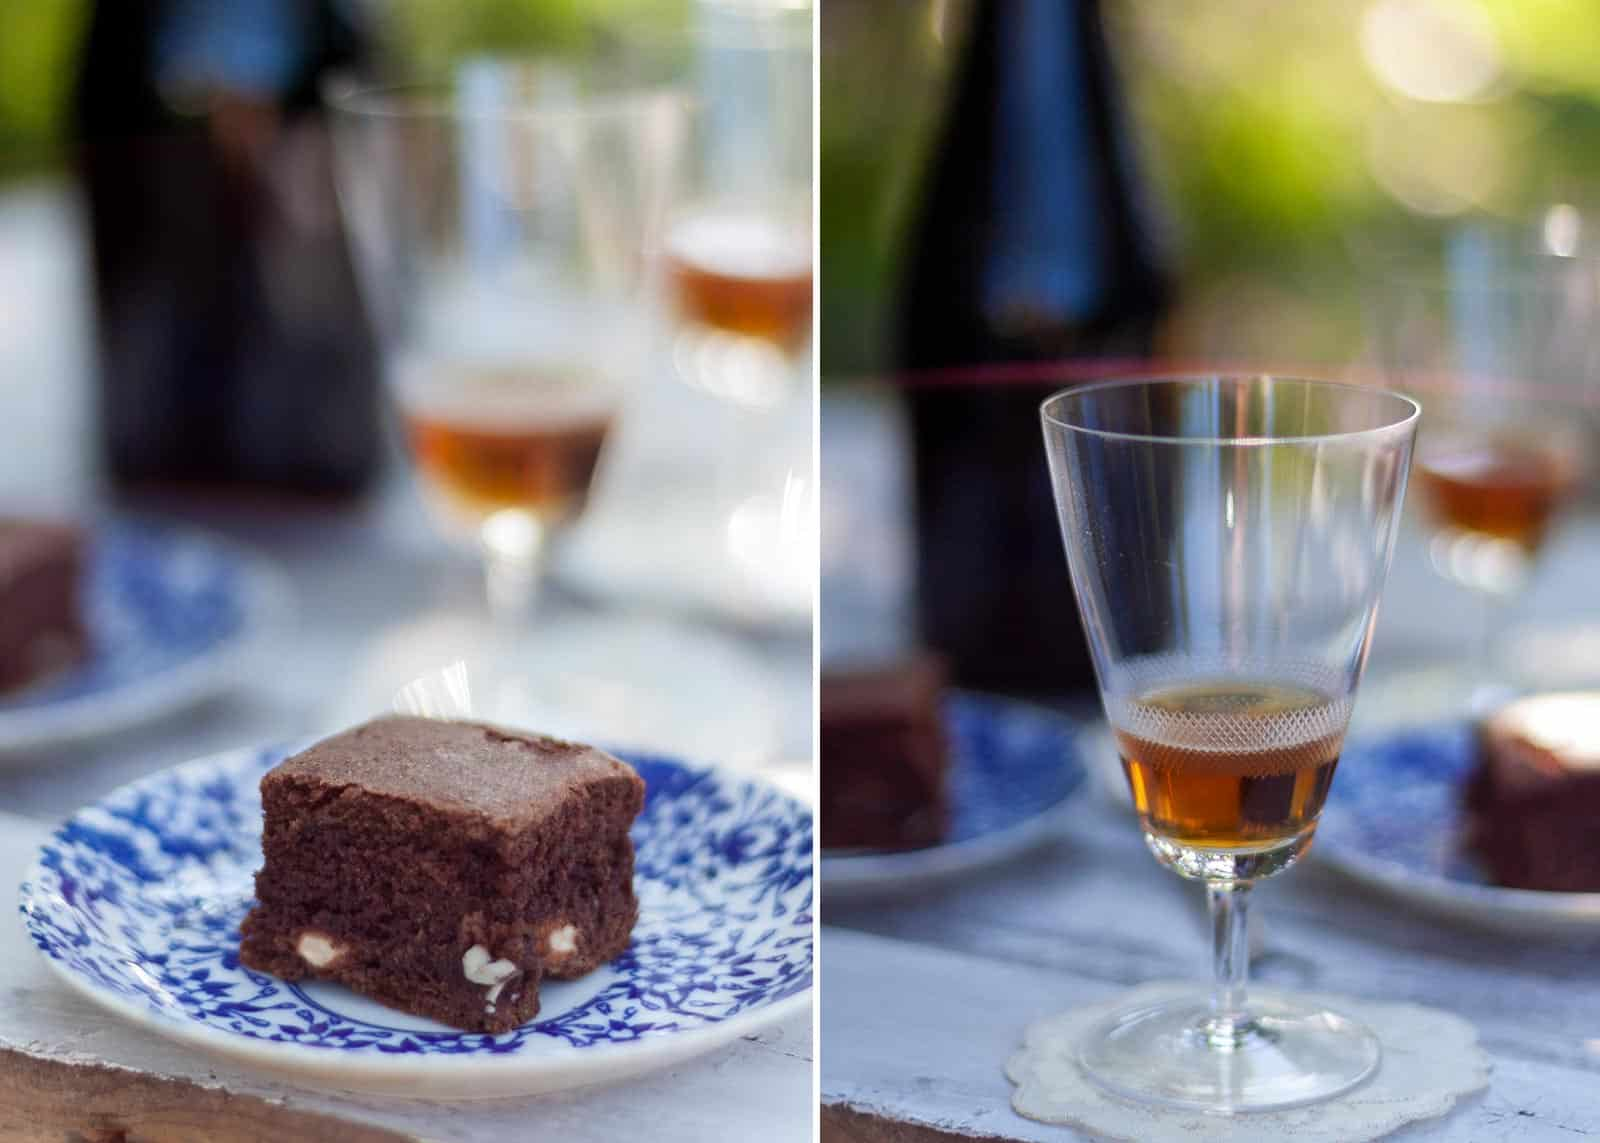 Sweet seduction in Italian. cake and wine